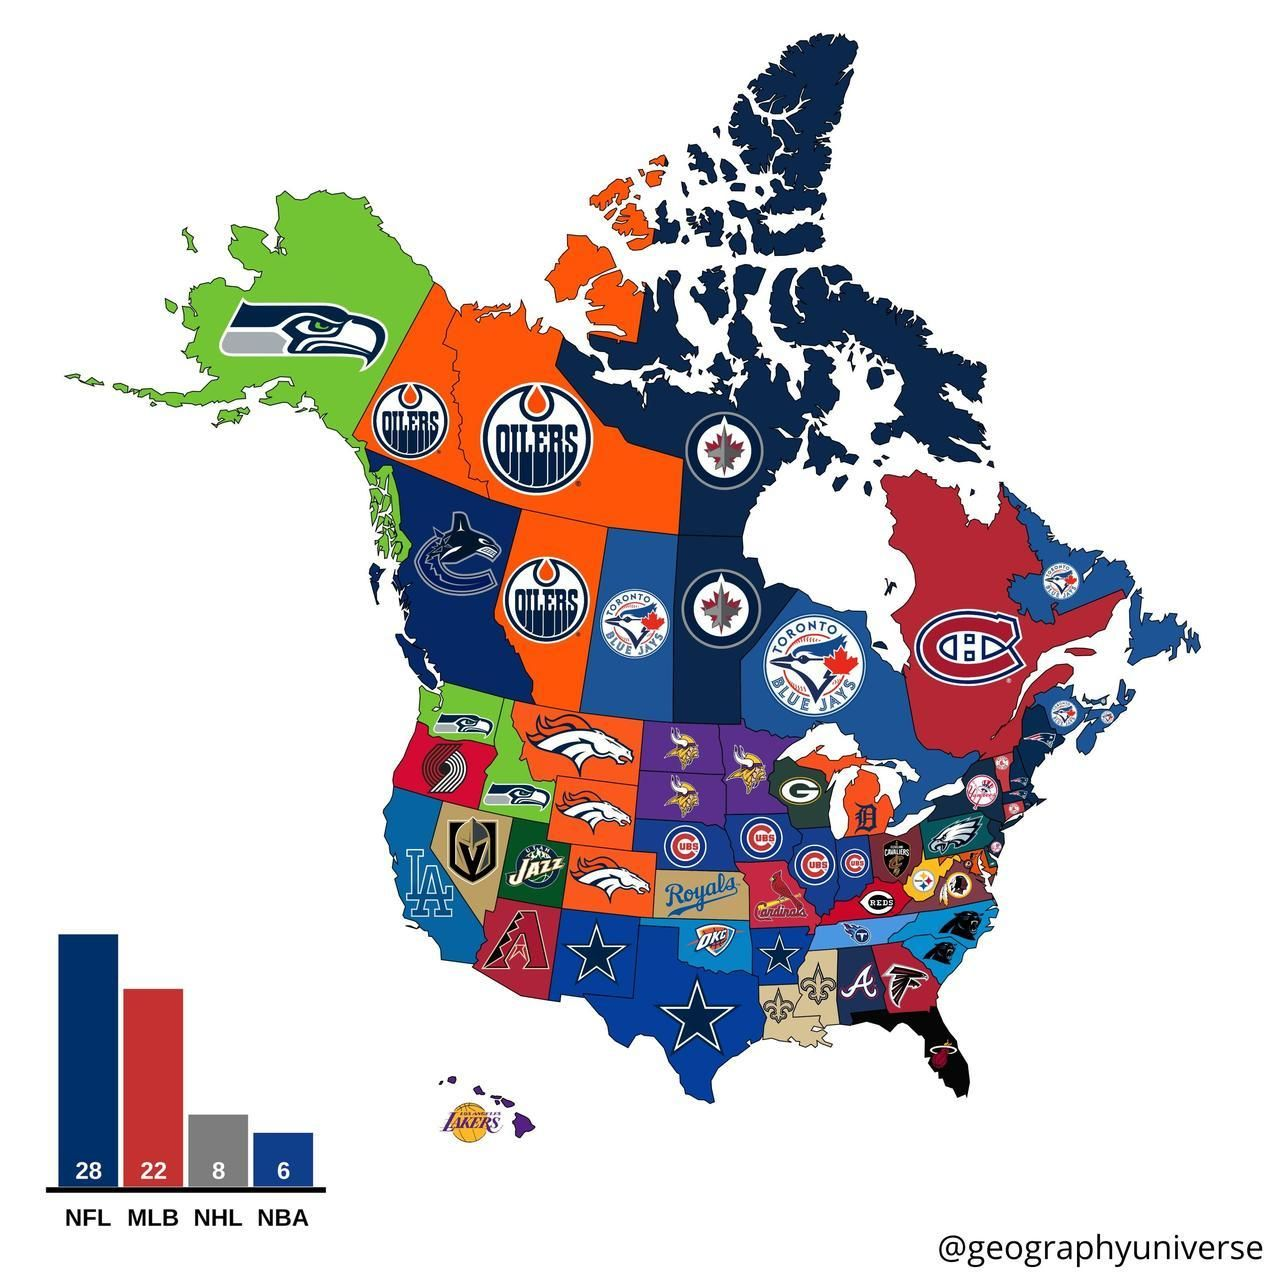 Most por professional sports teams in every state ... Map Of Nhl Fan Territory on mlb blackout map, nhl canada map, nhl country map, nhl fan map, nhl division map, most hated nfl team map, nhl region map, nhl city map, nhl market map, nhl state map, nhl team map, nhl history,